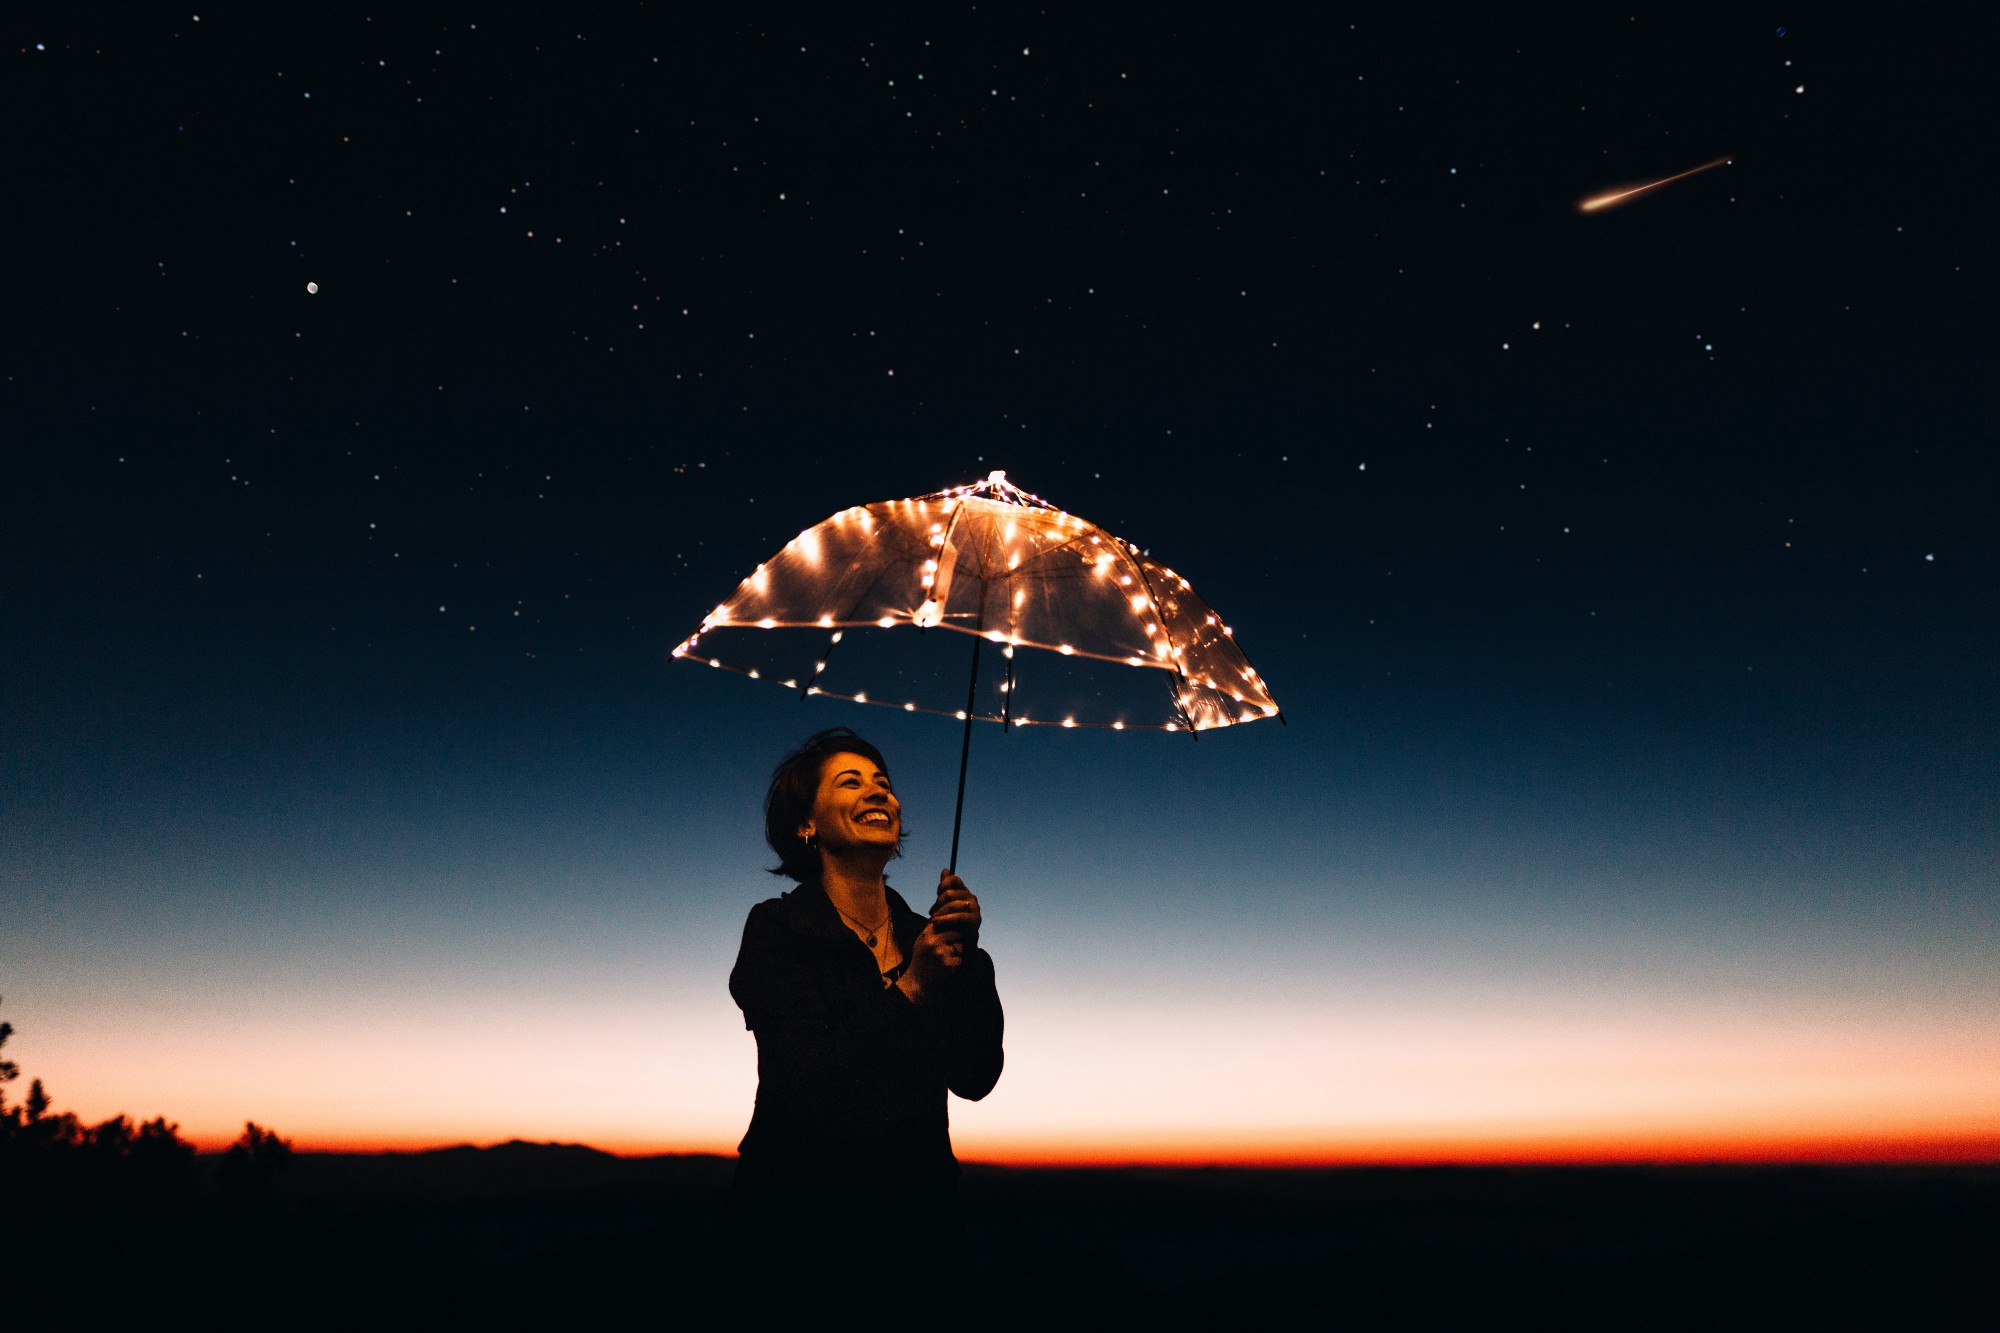 Woman holding umbrella with lights against a night sky.